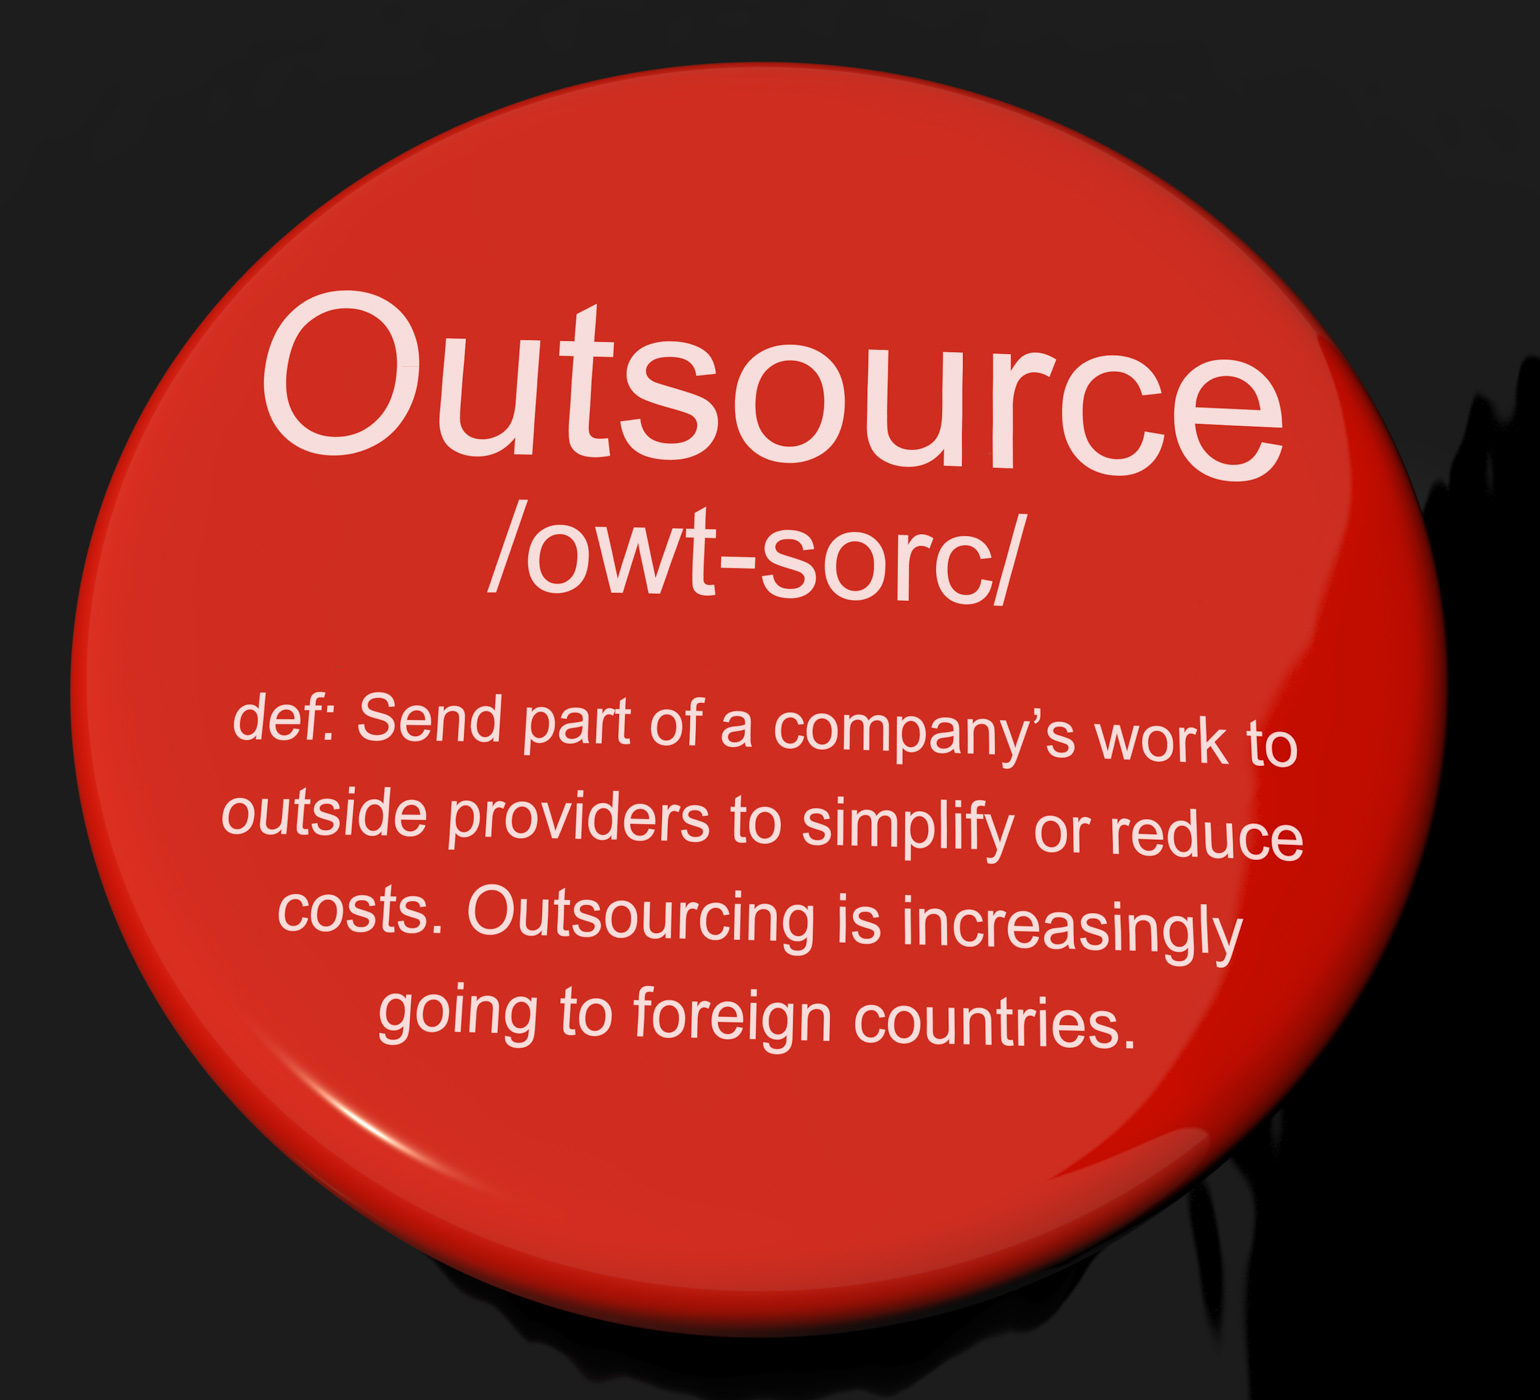 Outsource definition button showing subcontracting suppliers and freel photo